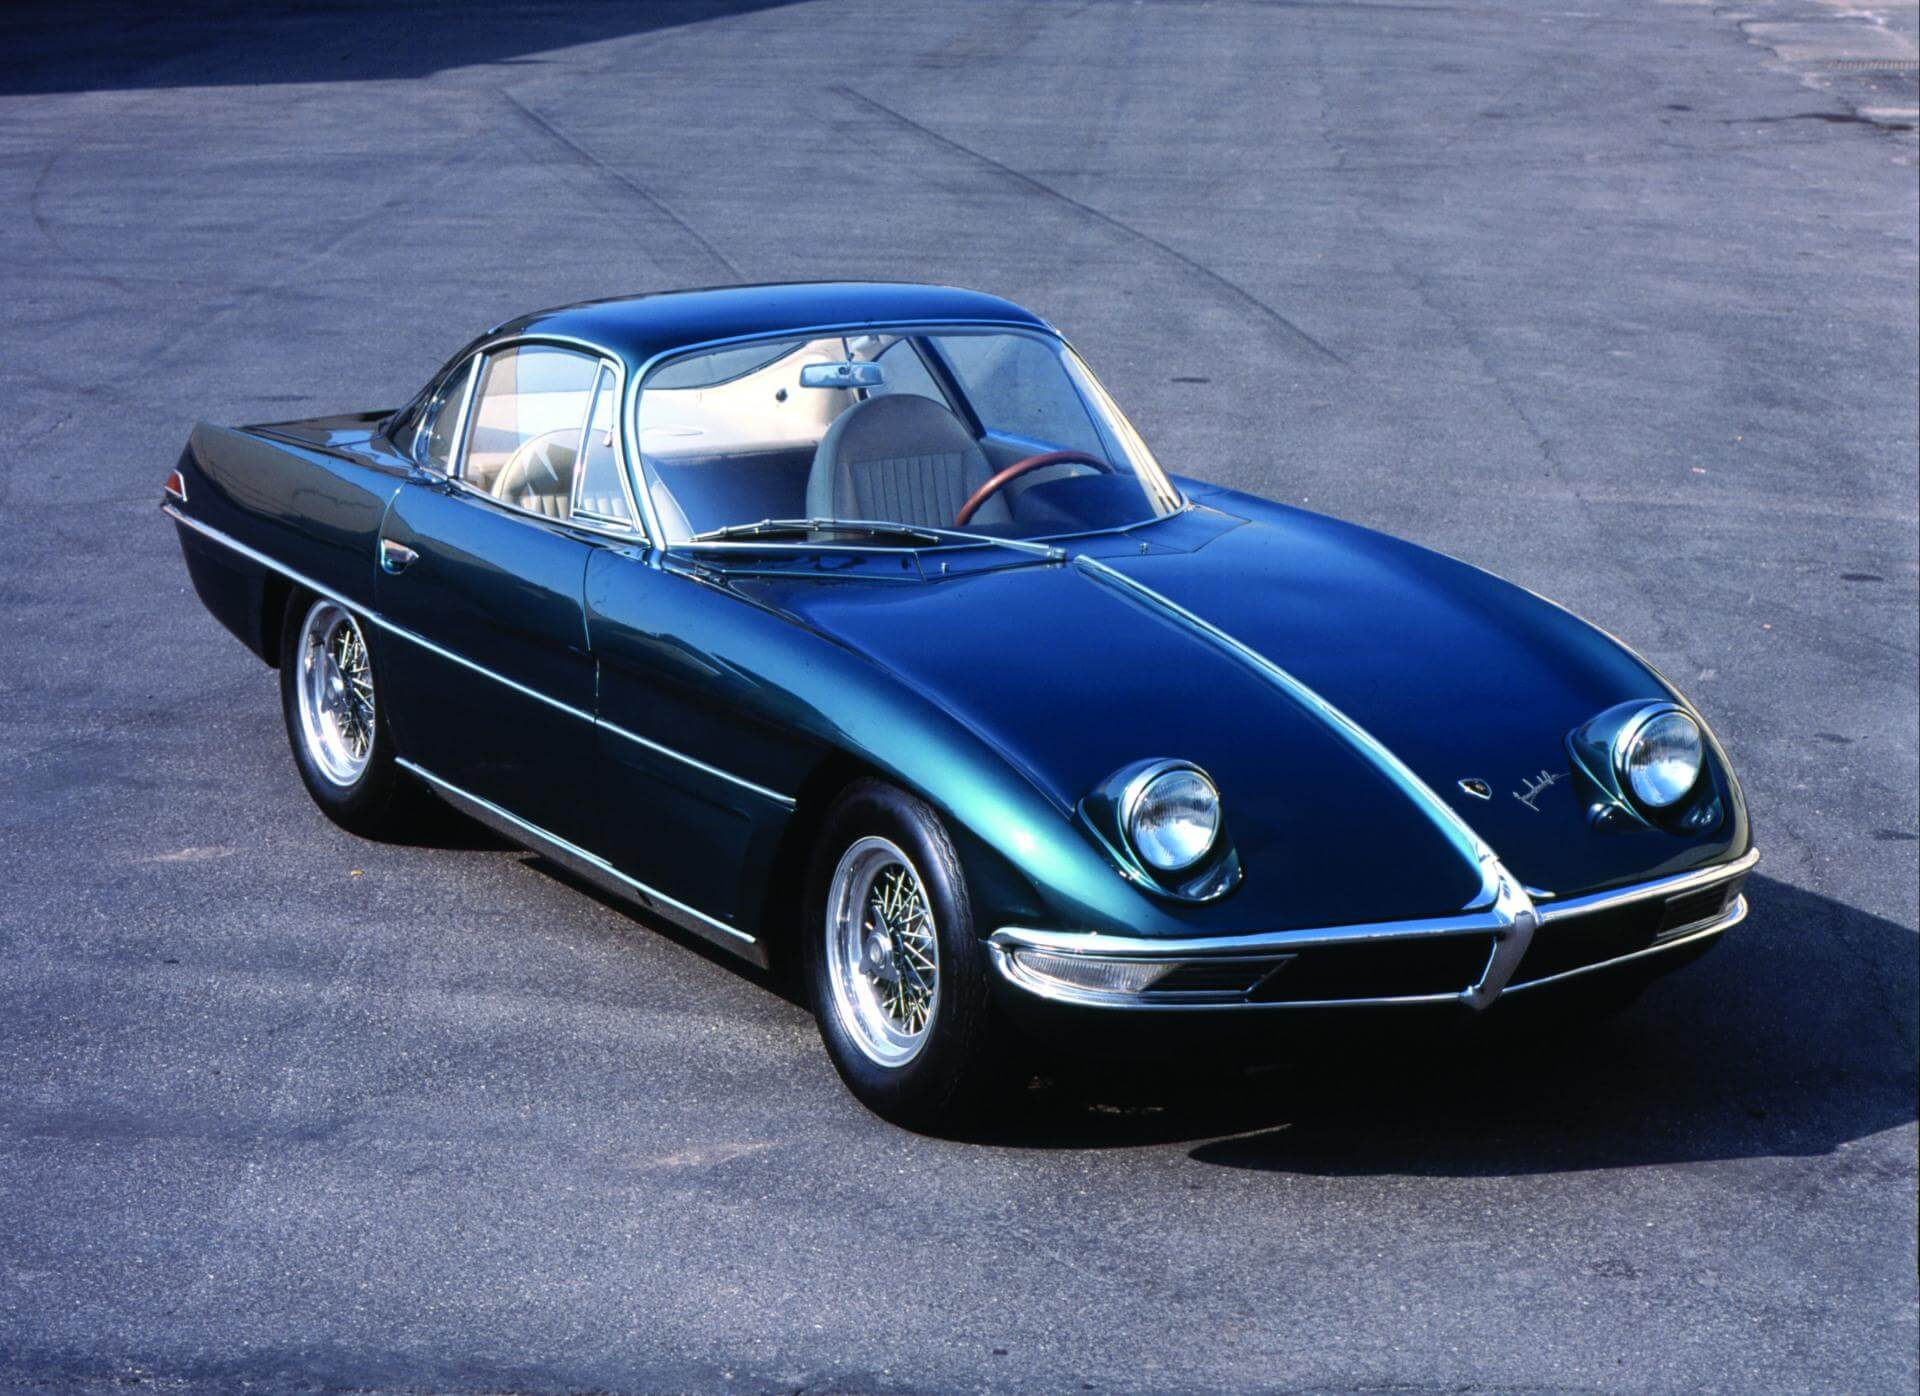 Things you didn't know about Lamborghini; Lamborghini 350 GTV